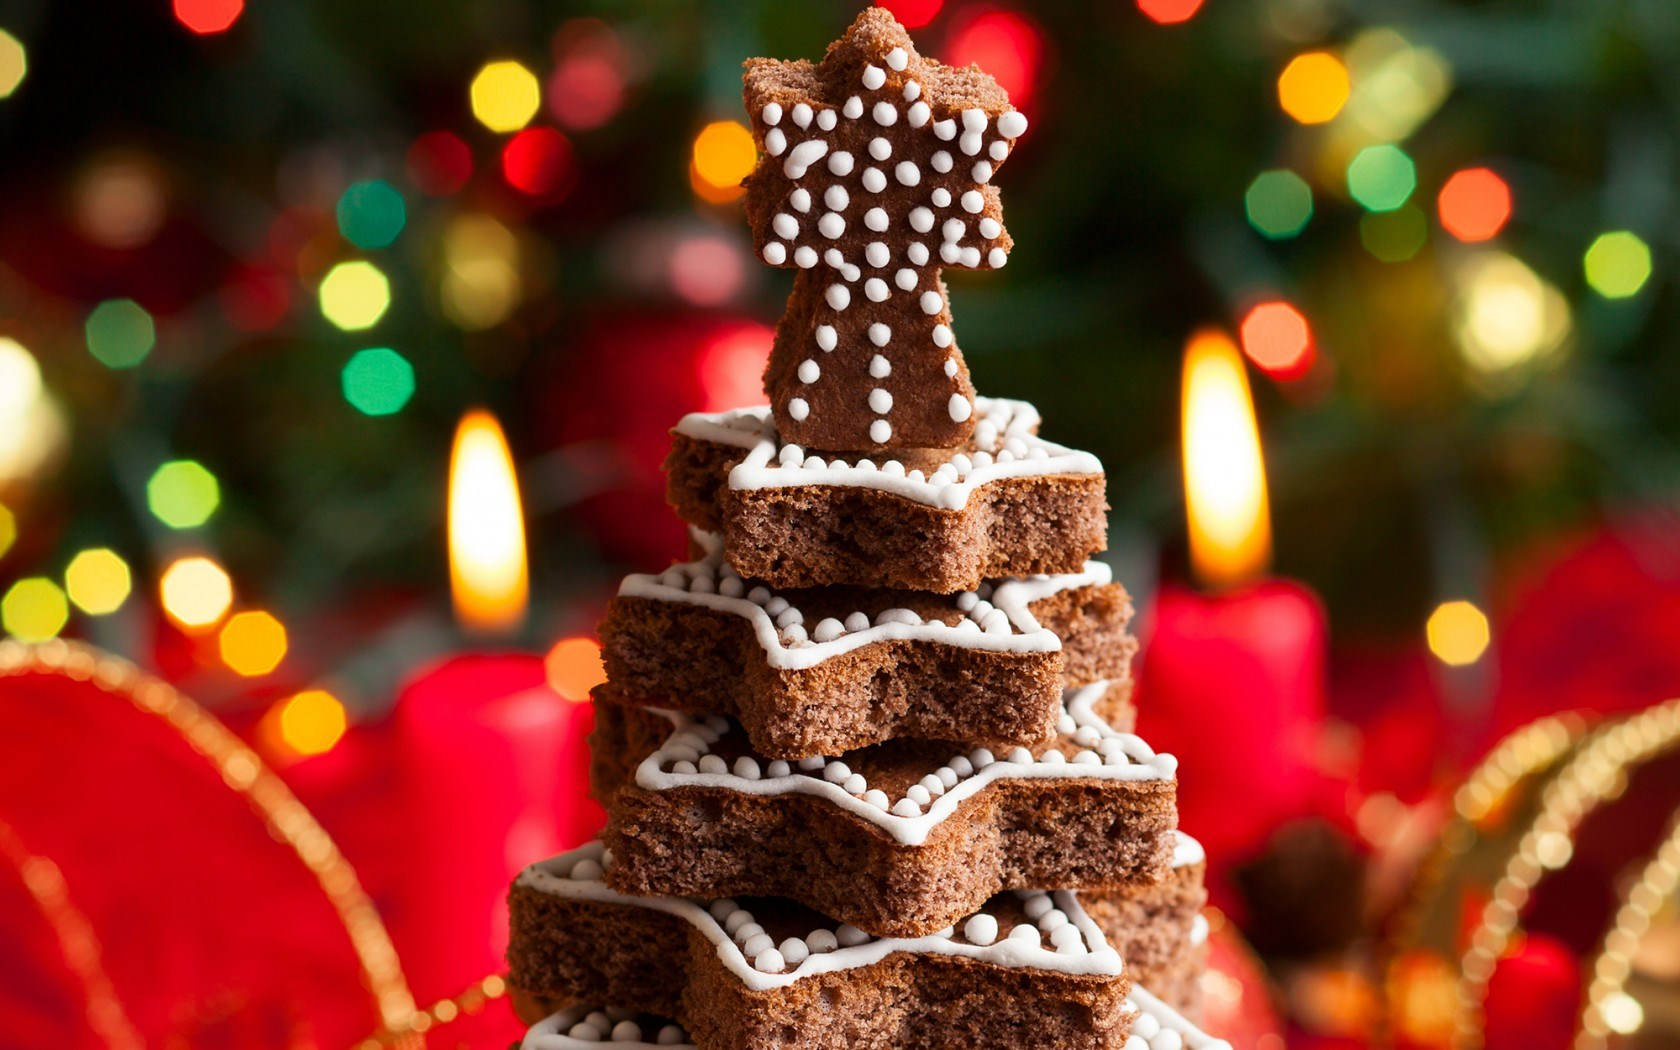 merry christmas wallpapers cake hd - HD Desktop Wallpapers ...